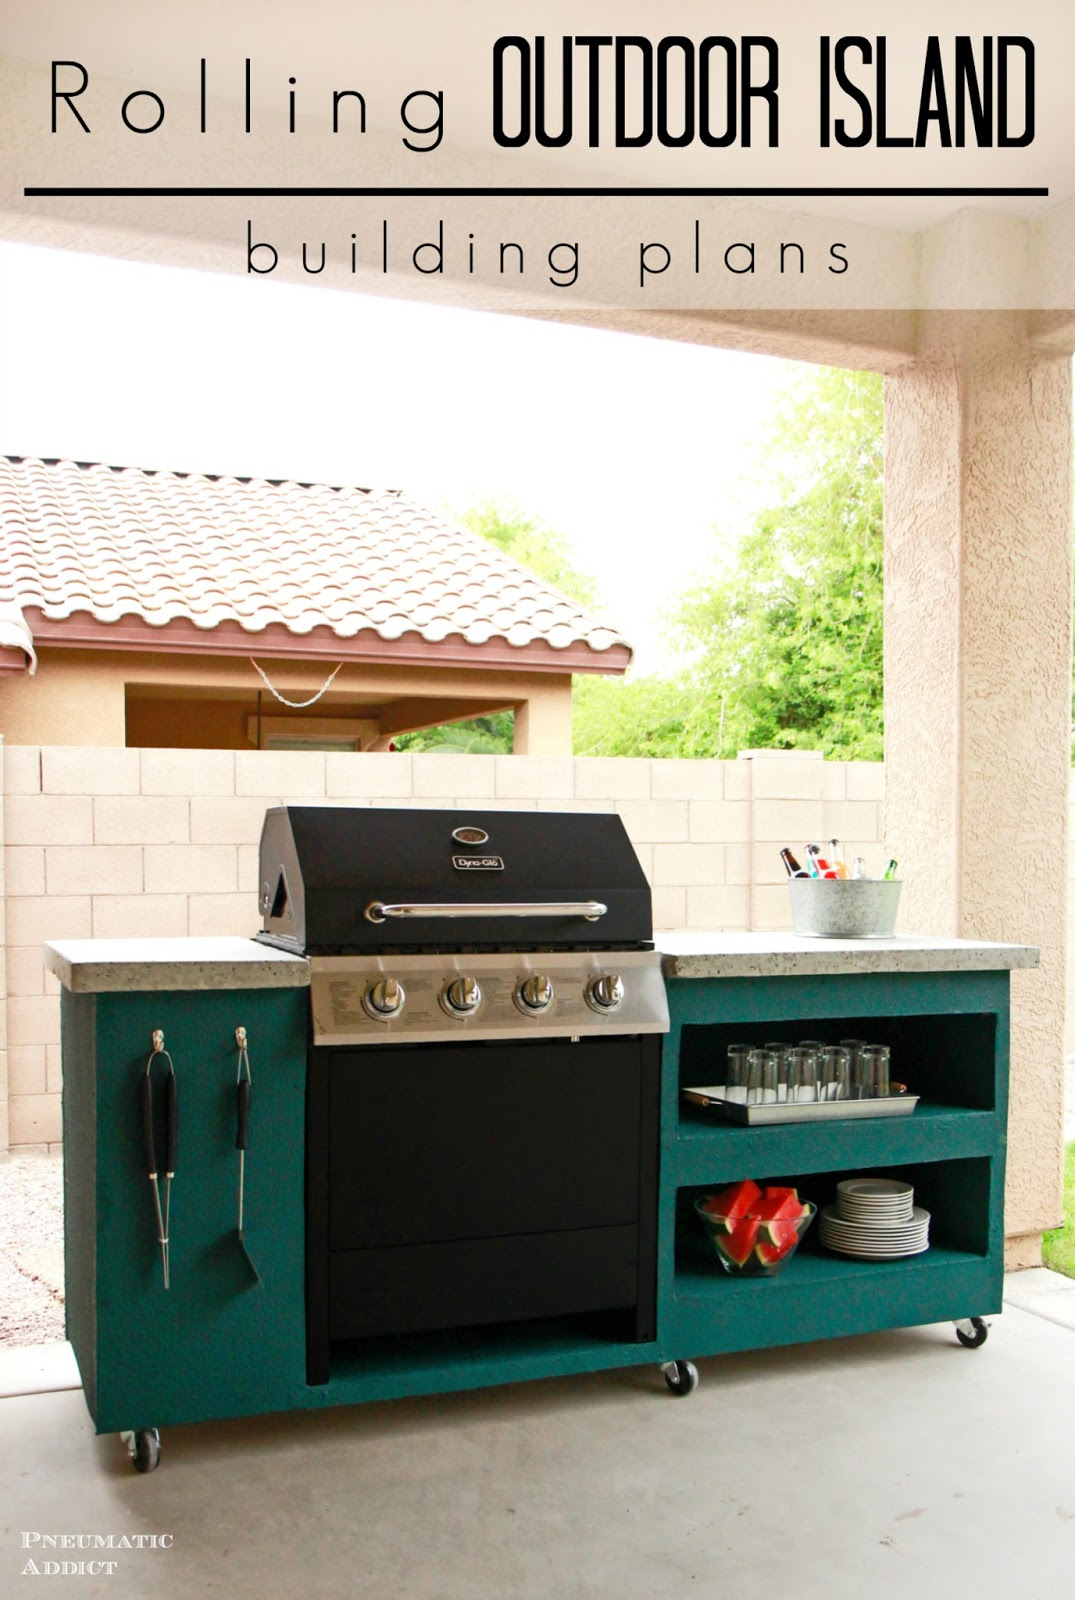 how to build your own kitchen island outdoor design plans diy home ideas the kynochs